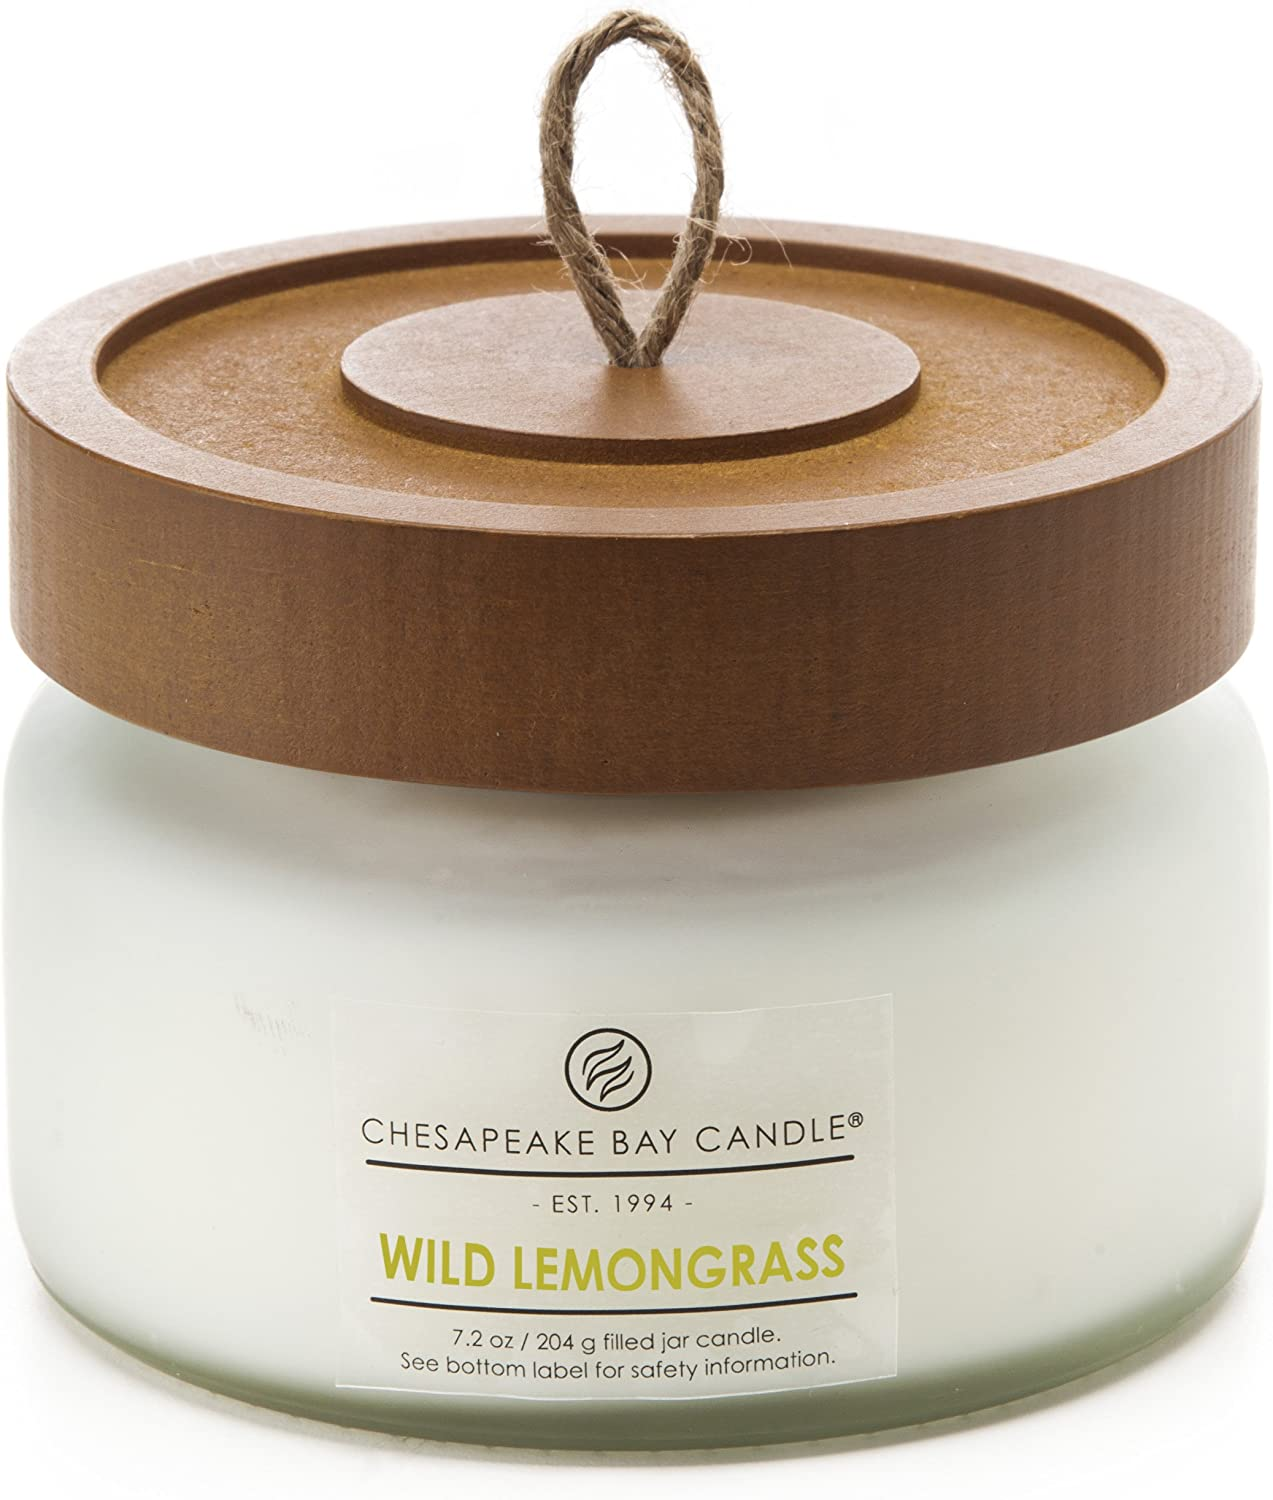 Chesapeake Bay Candle Scented Candle, Wild Lemongrass, Small Jar